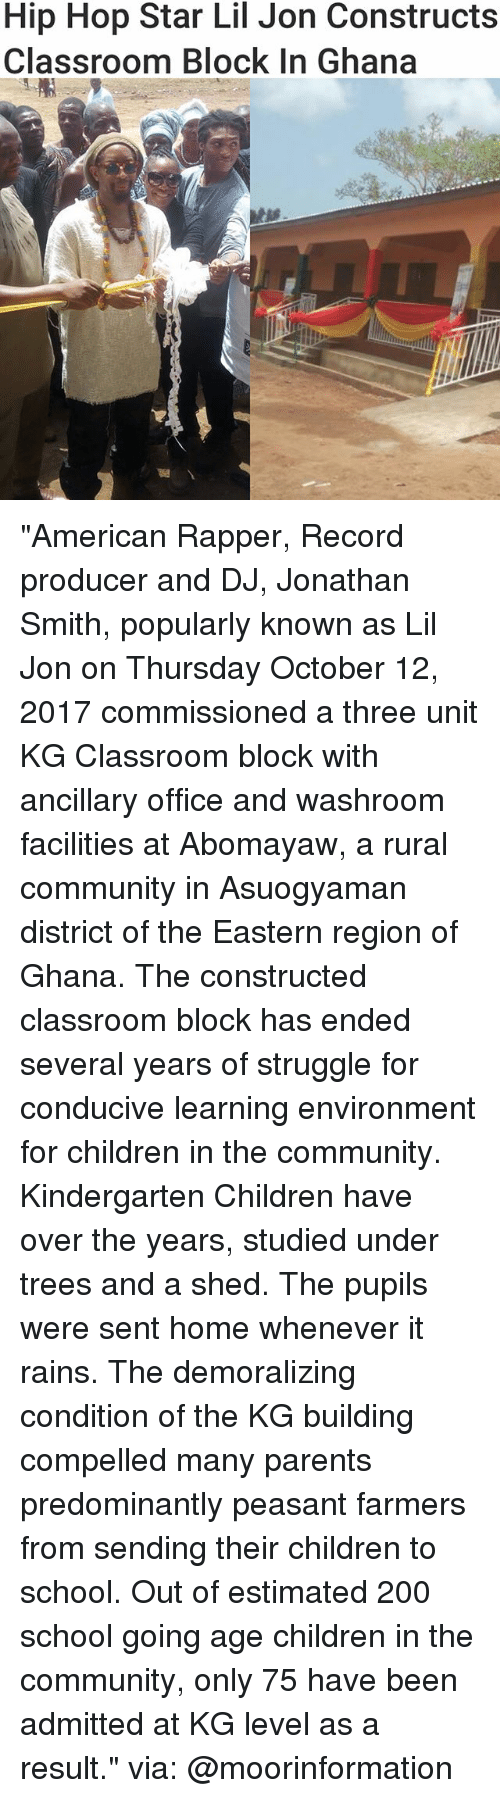 "Bailey Jay, Children, and Community: Hip Hop Star Lil Jon Constructs  Classroom BloCK In Ghana ""American Rapper, Record producer and DJ, Jonathan Smith, popularly known as Lil Jon on Thursday October 12, 2017 commissioned a three unit KG Classroom block with ancillary office and washroom facilities at Abomayaw, a rural community in Asuogyaman district of the Eastern region of Ghana. The constructed classroom block has ended several years of struggle for conducive learning environment for children in the community. Kindergarten Children have over the years, studied under trees and a shed. The pupils were sent home whenever it rains. The demoralizing condition of the KG building compelled many parents predominantly peasant farmers from sending their children to school. Out of estimated 200 school going age children in the community, only 75 have been admitted at KG level as a result."" via: @moorinformation"